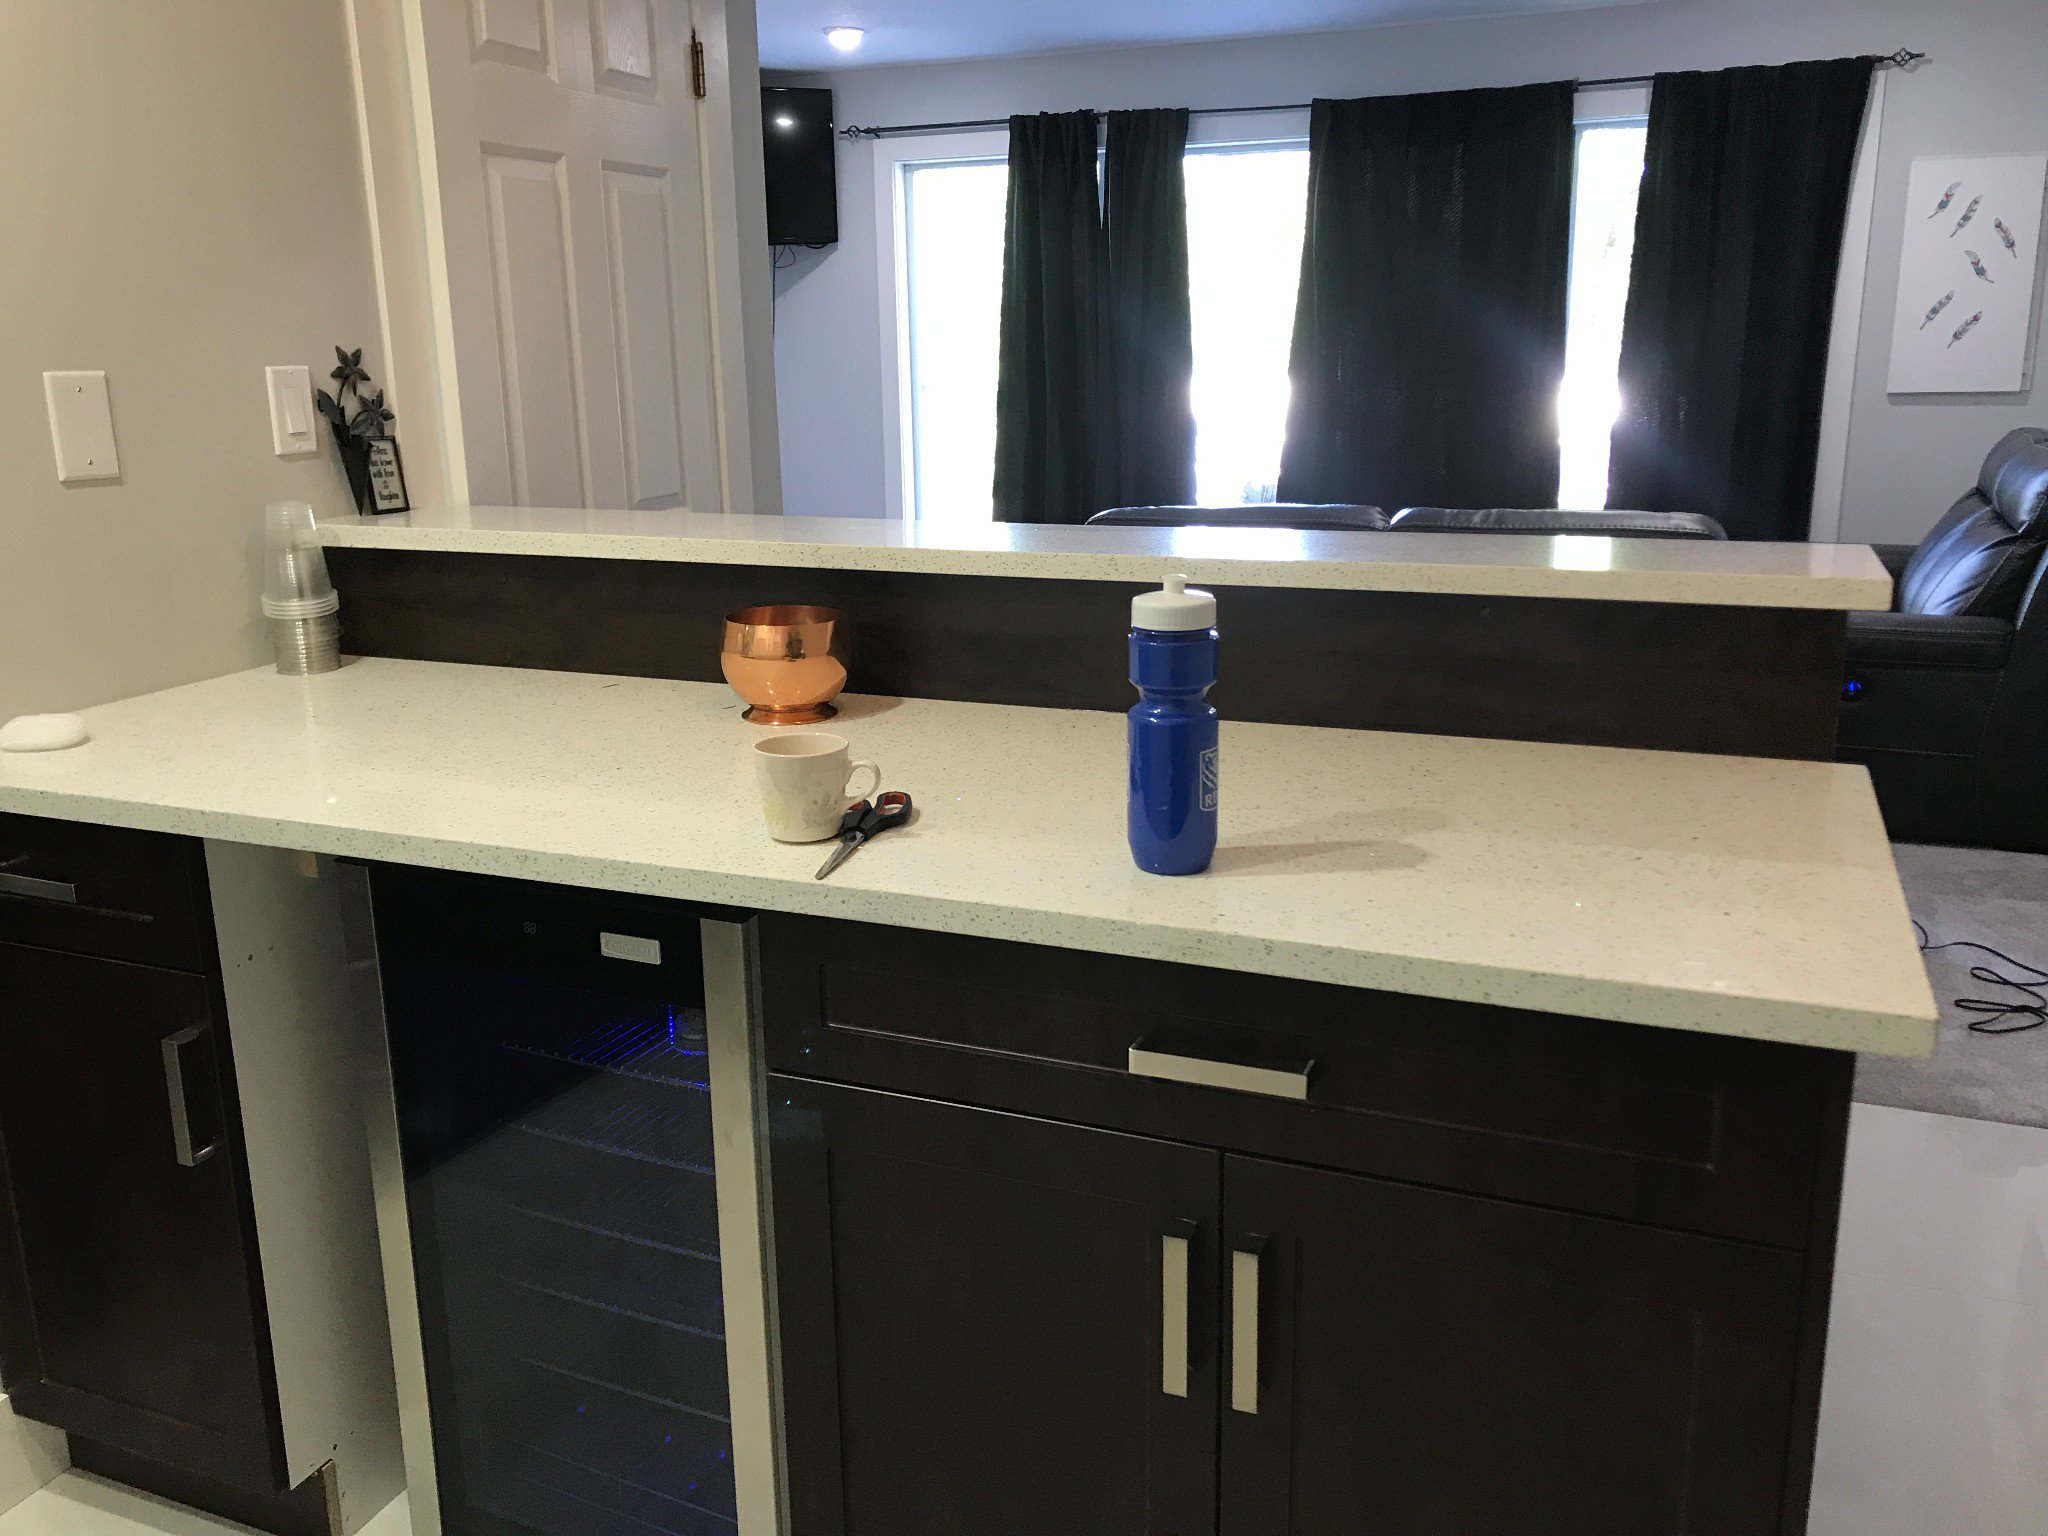 Photo 17: Photos: 34694 Dewdney Trunk Rd. in Mission: House for rent